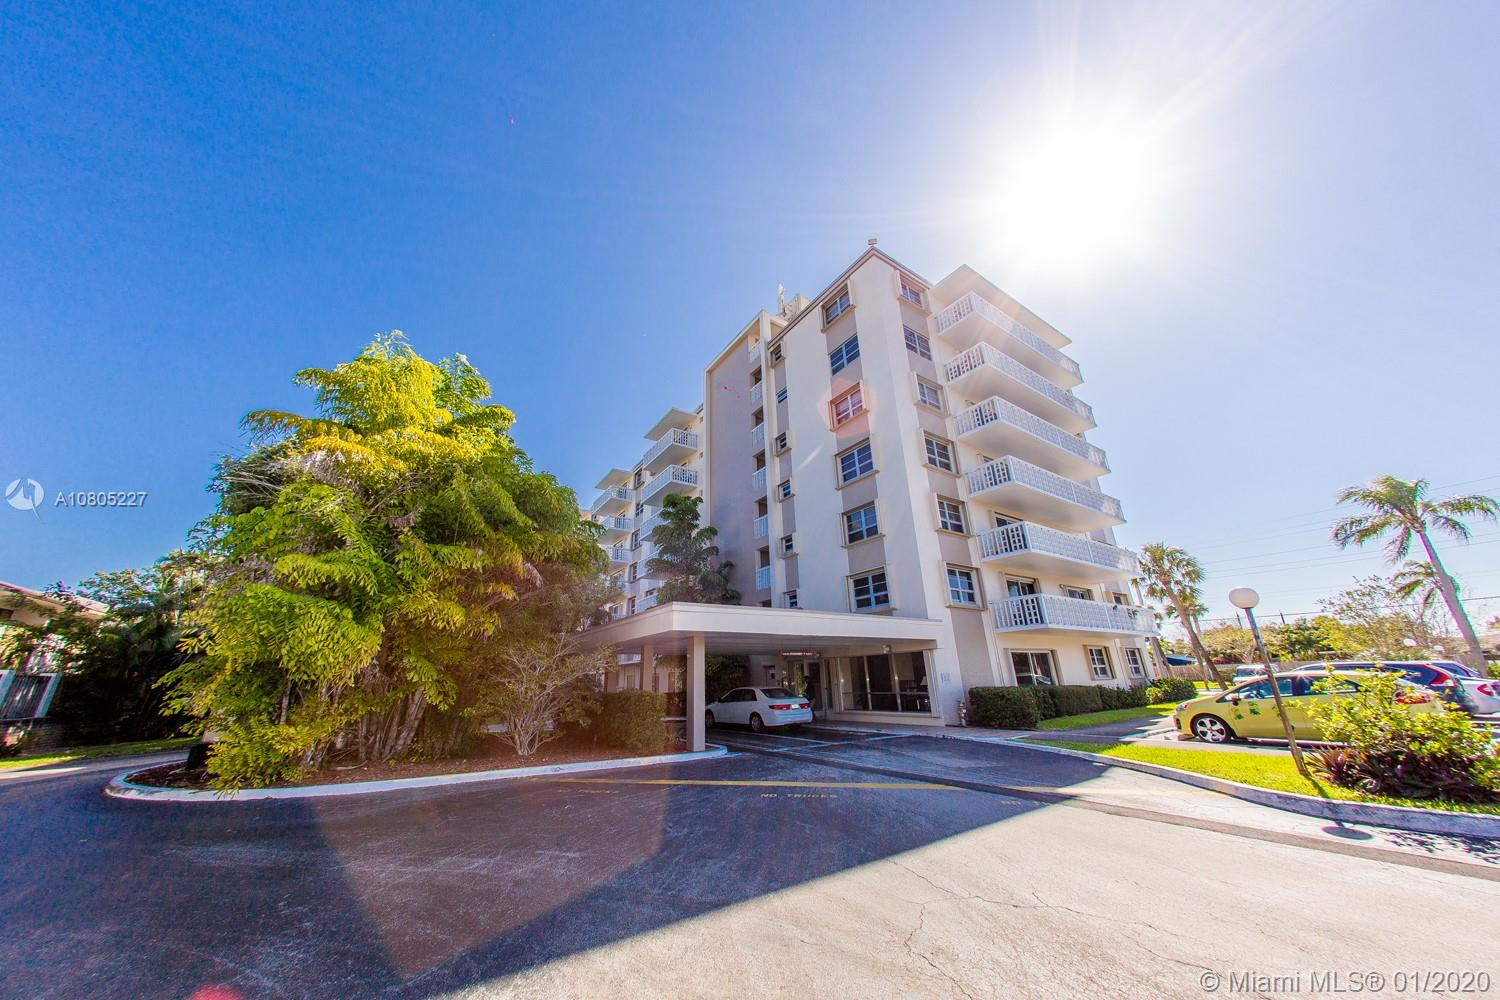 Renovated condo with beautiful city views is ready to move in! Property features redone kitchen and baths, laminate wood and tile floors, top floor with open balcony and so much more. Make this your home today!